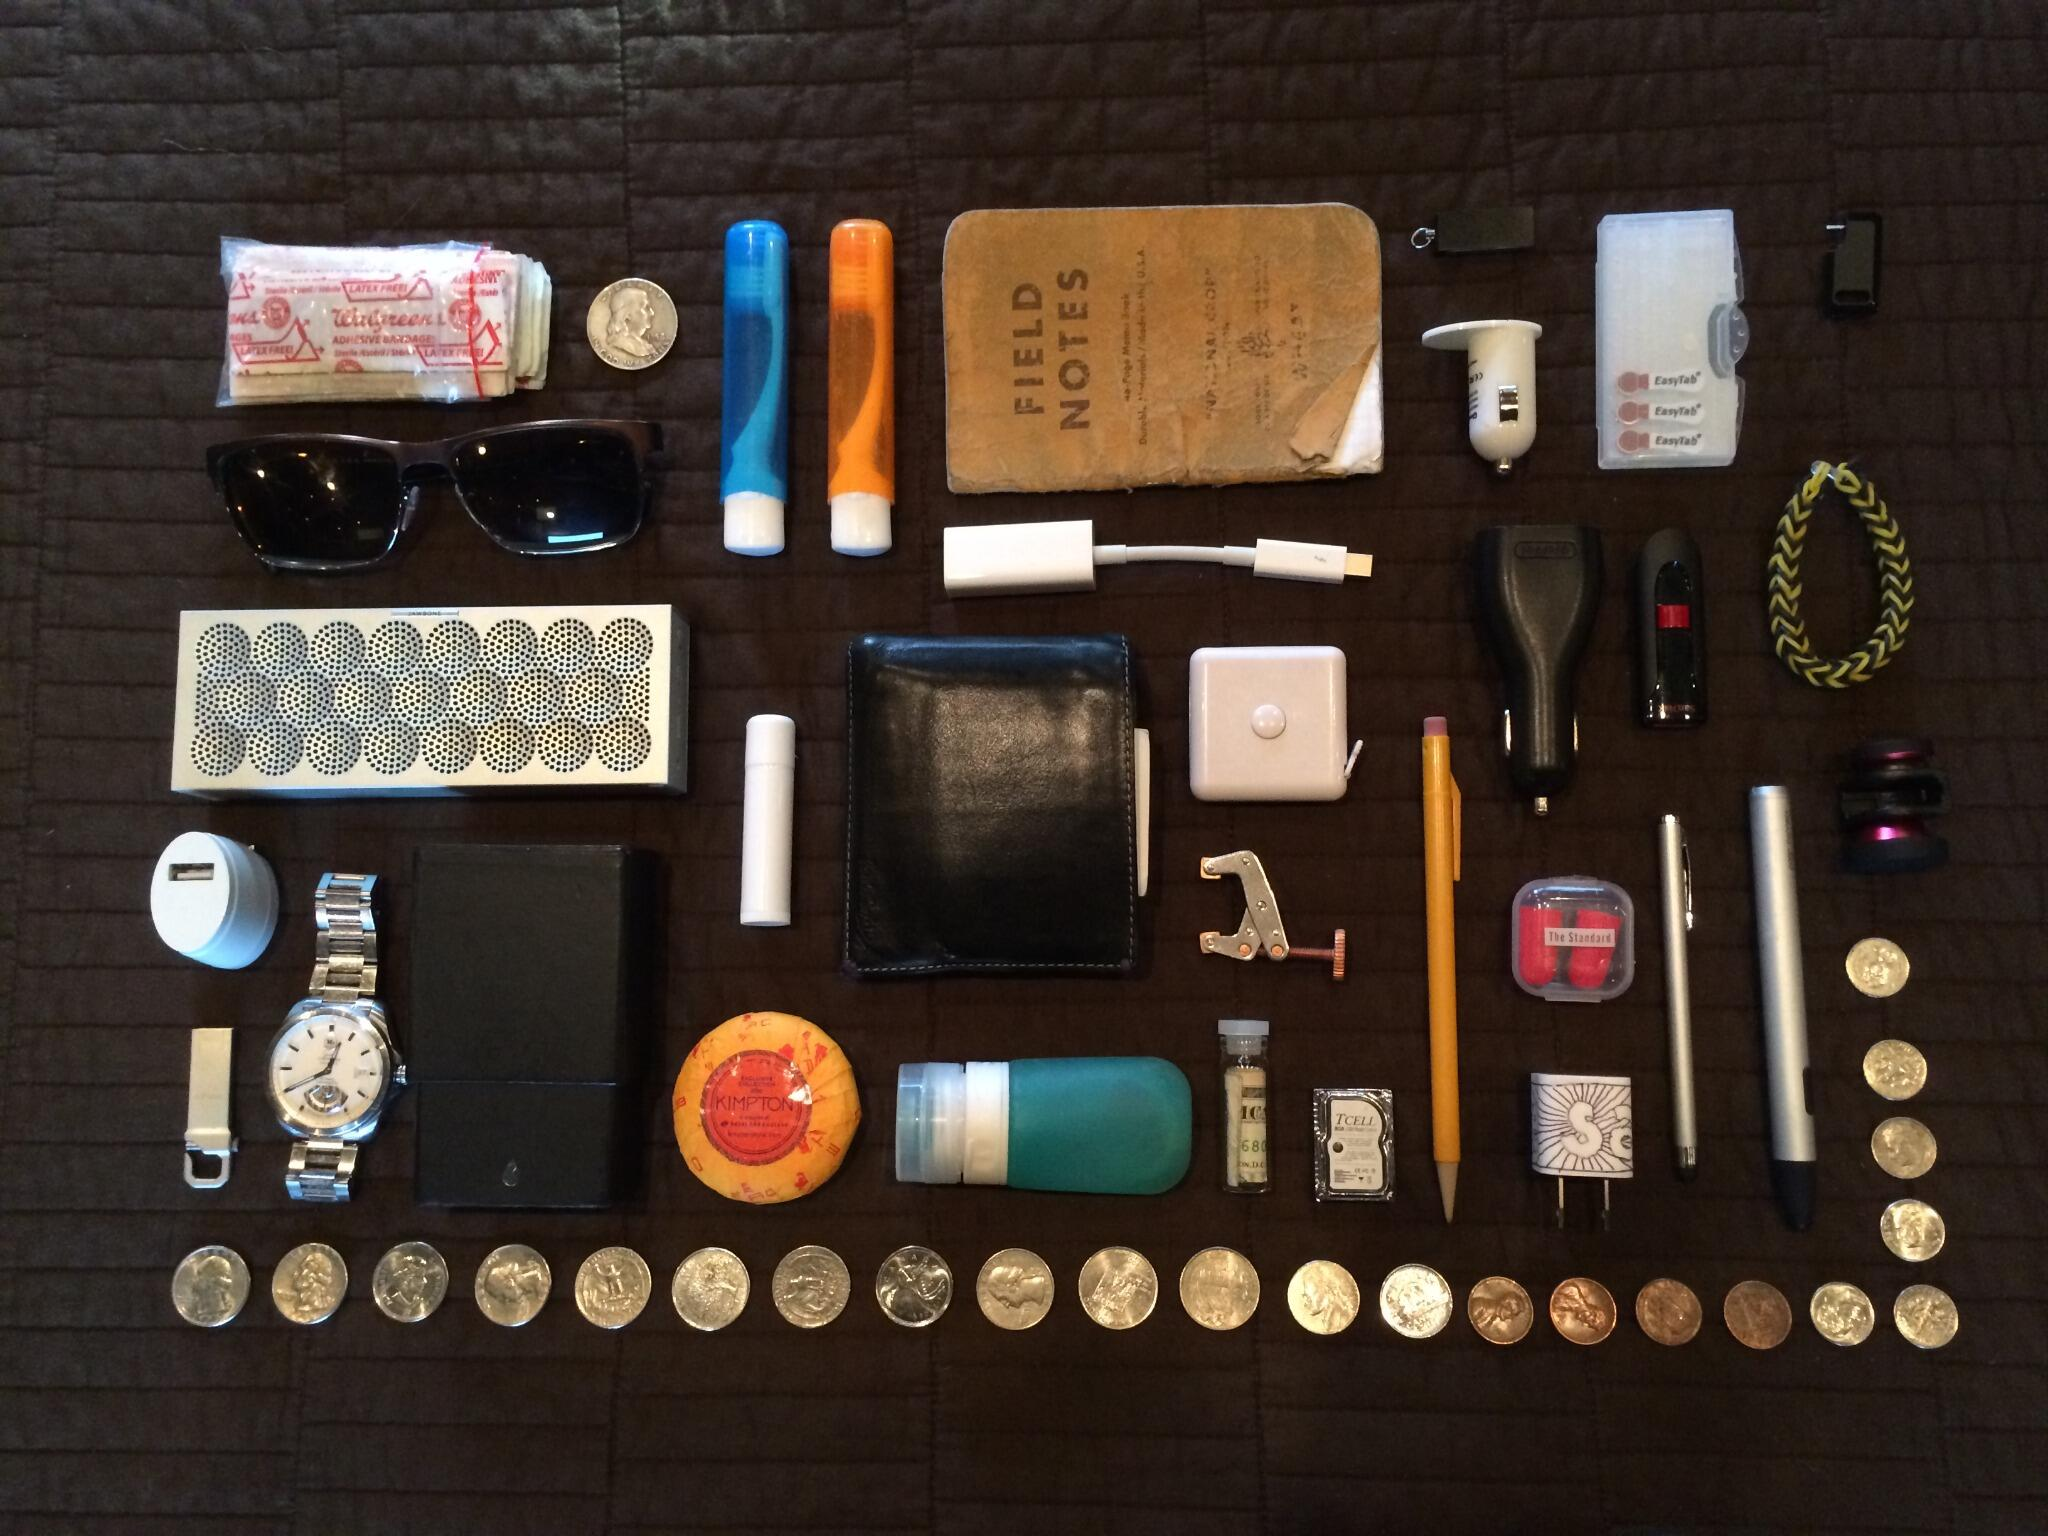 The other day I had a particular good knoll as I talked on the phone. #knolling @organizedthings http://t.co/HlgFzwz3e9